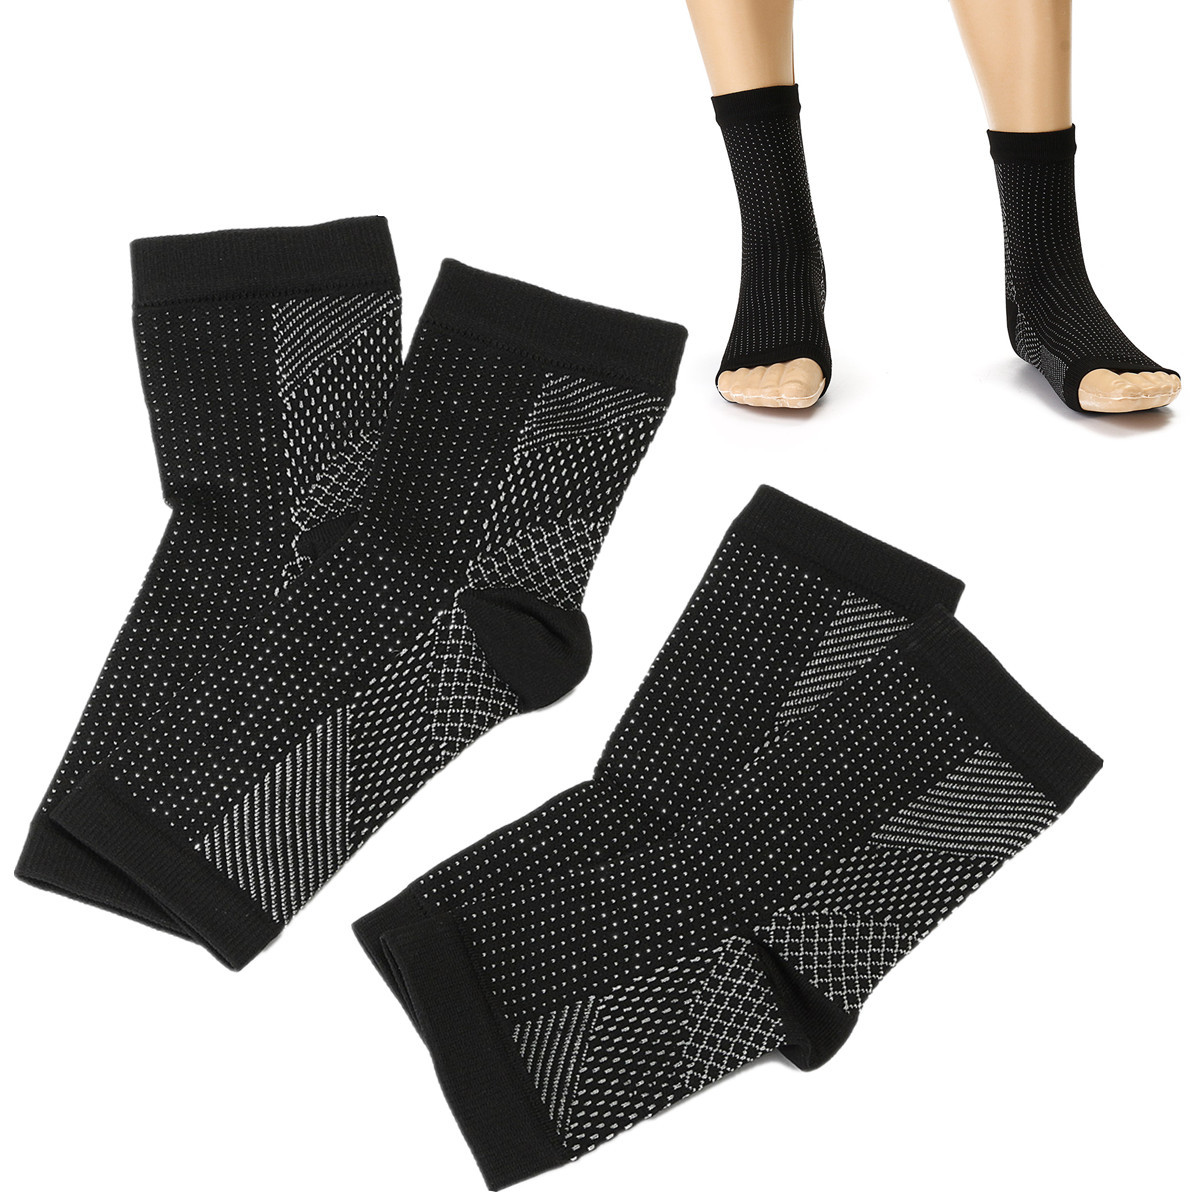 1 Pair Unisex Plantar Fasciitis Compression Socks Foot Ankle Sleeve Anti Fatigue Swelling Relief Socks Health Women & Men Warmer S/M/L/XL